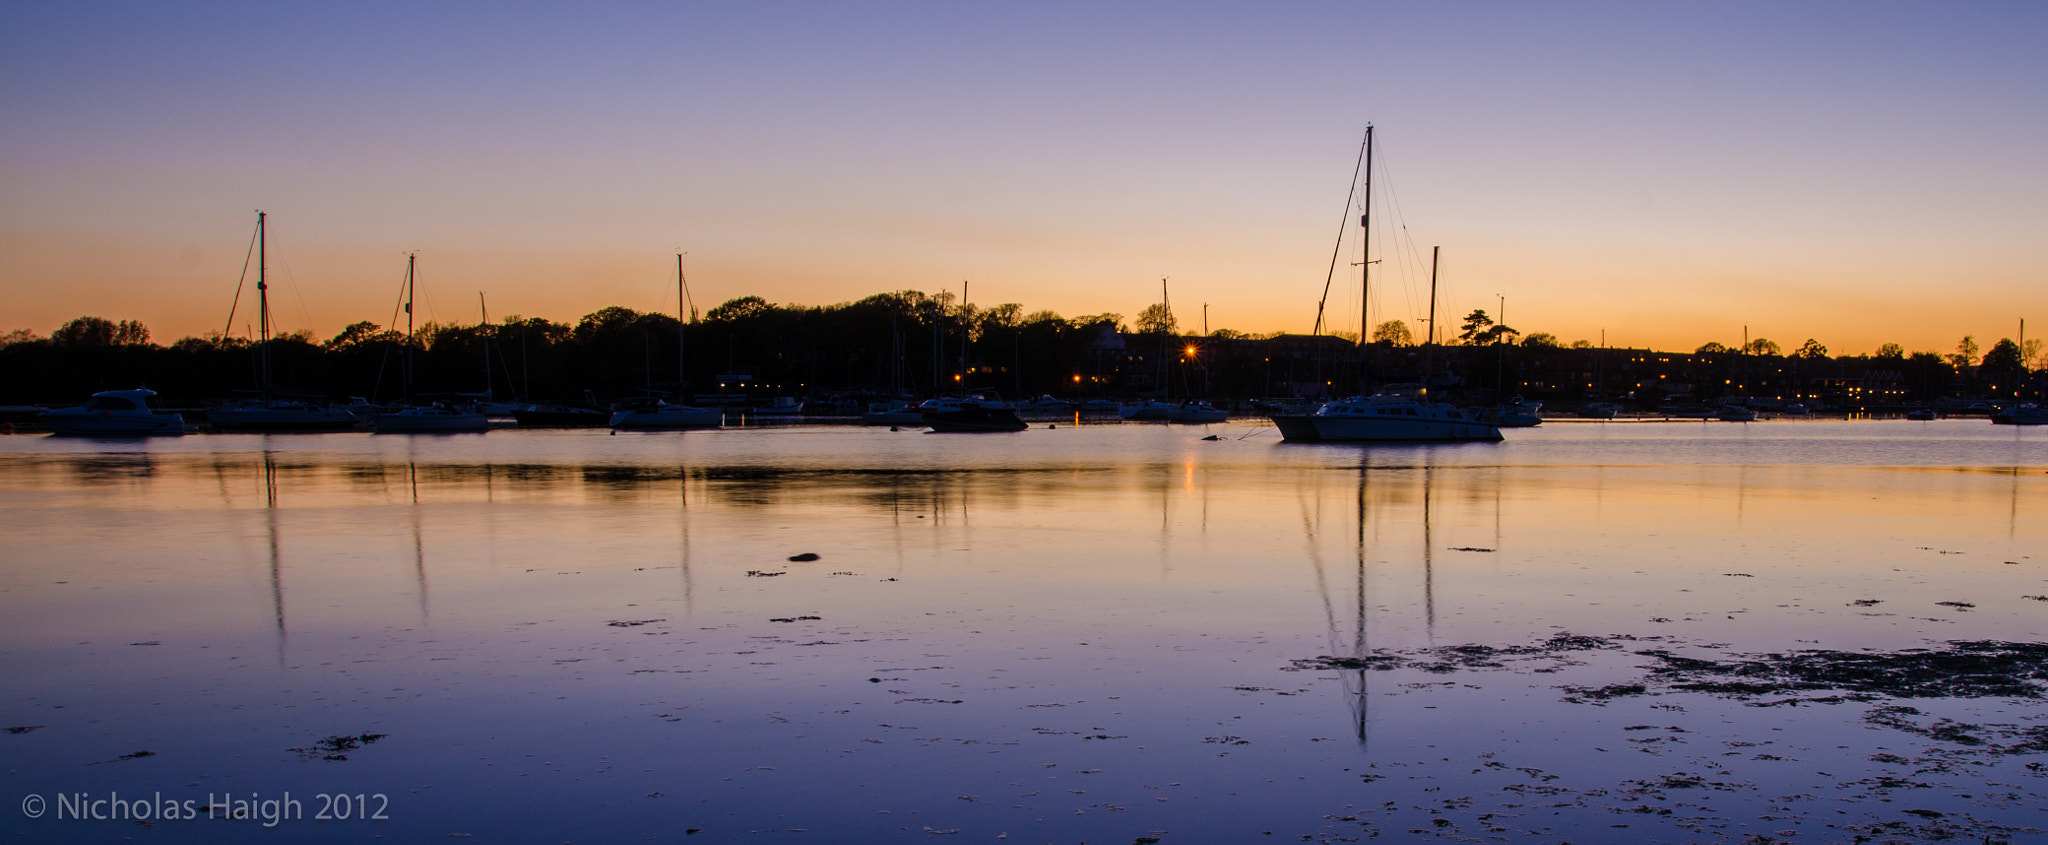 Photograph River Hamble at Dusk by Nick Haigh on 500px